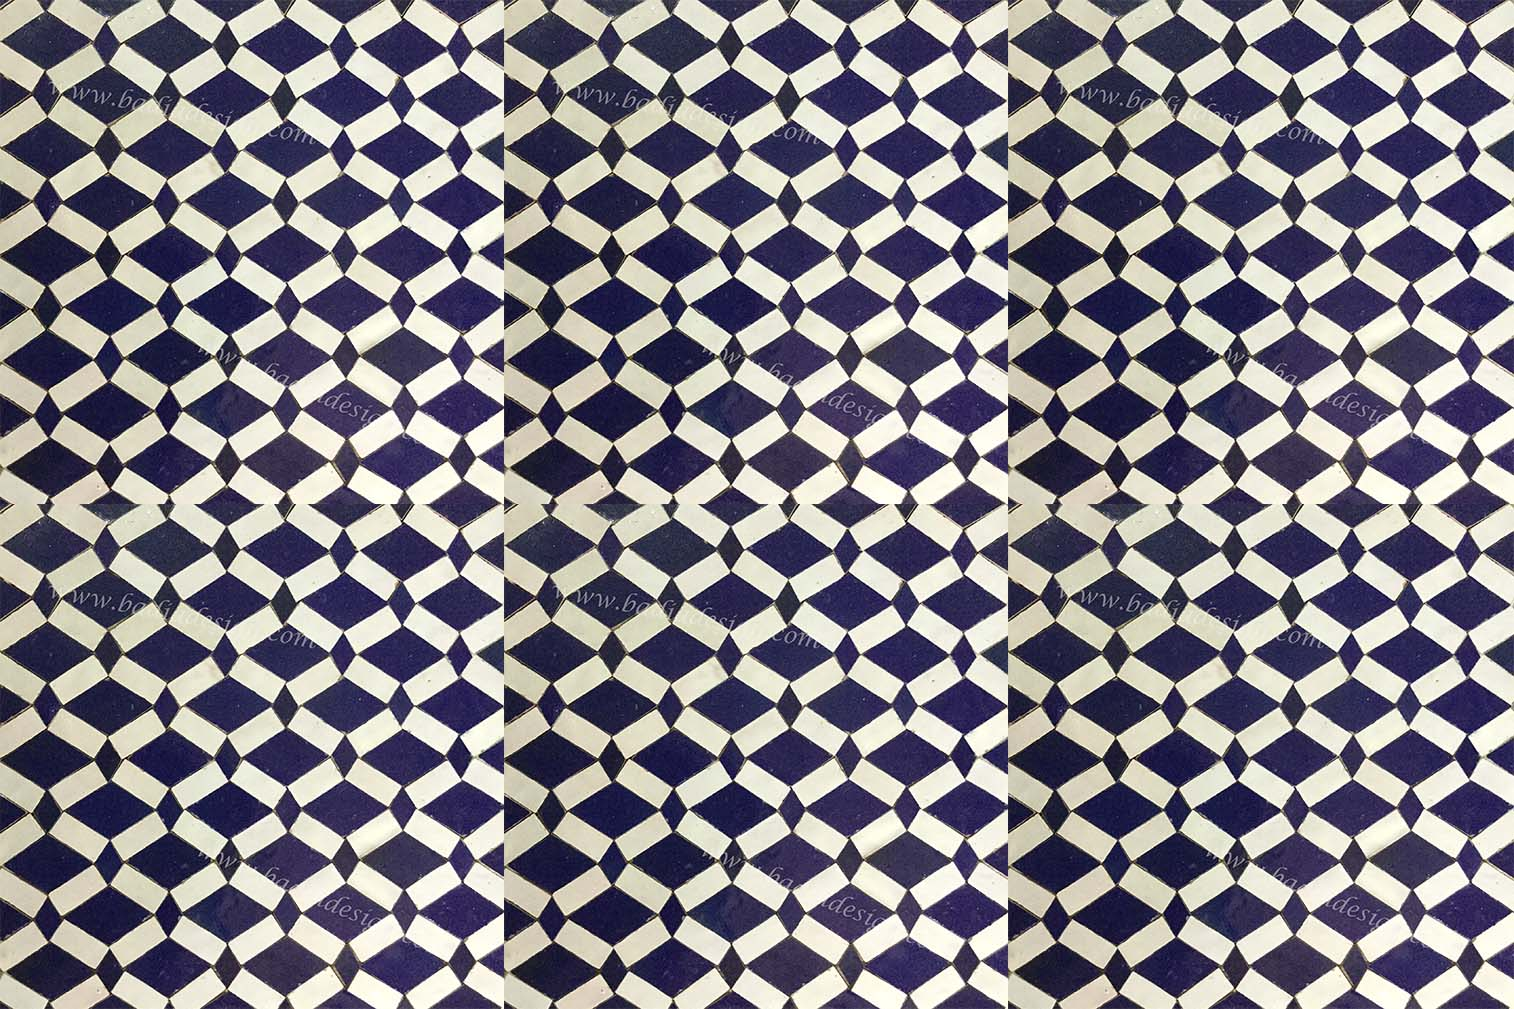 Moroccan Mosaic Ceramic Tile From Badia Design Inc